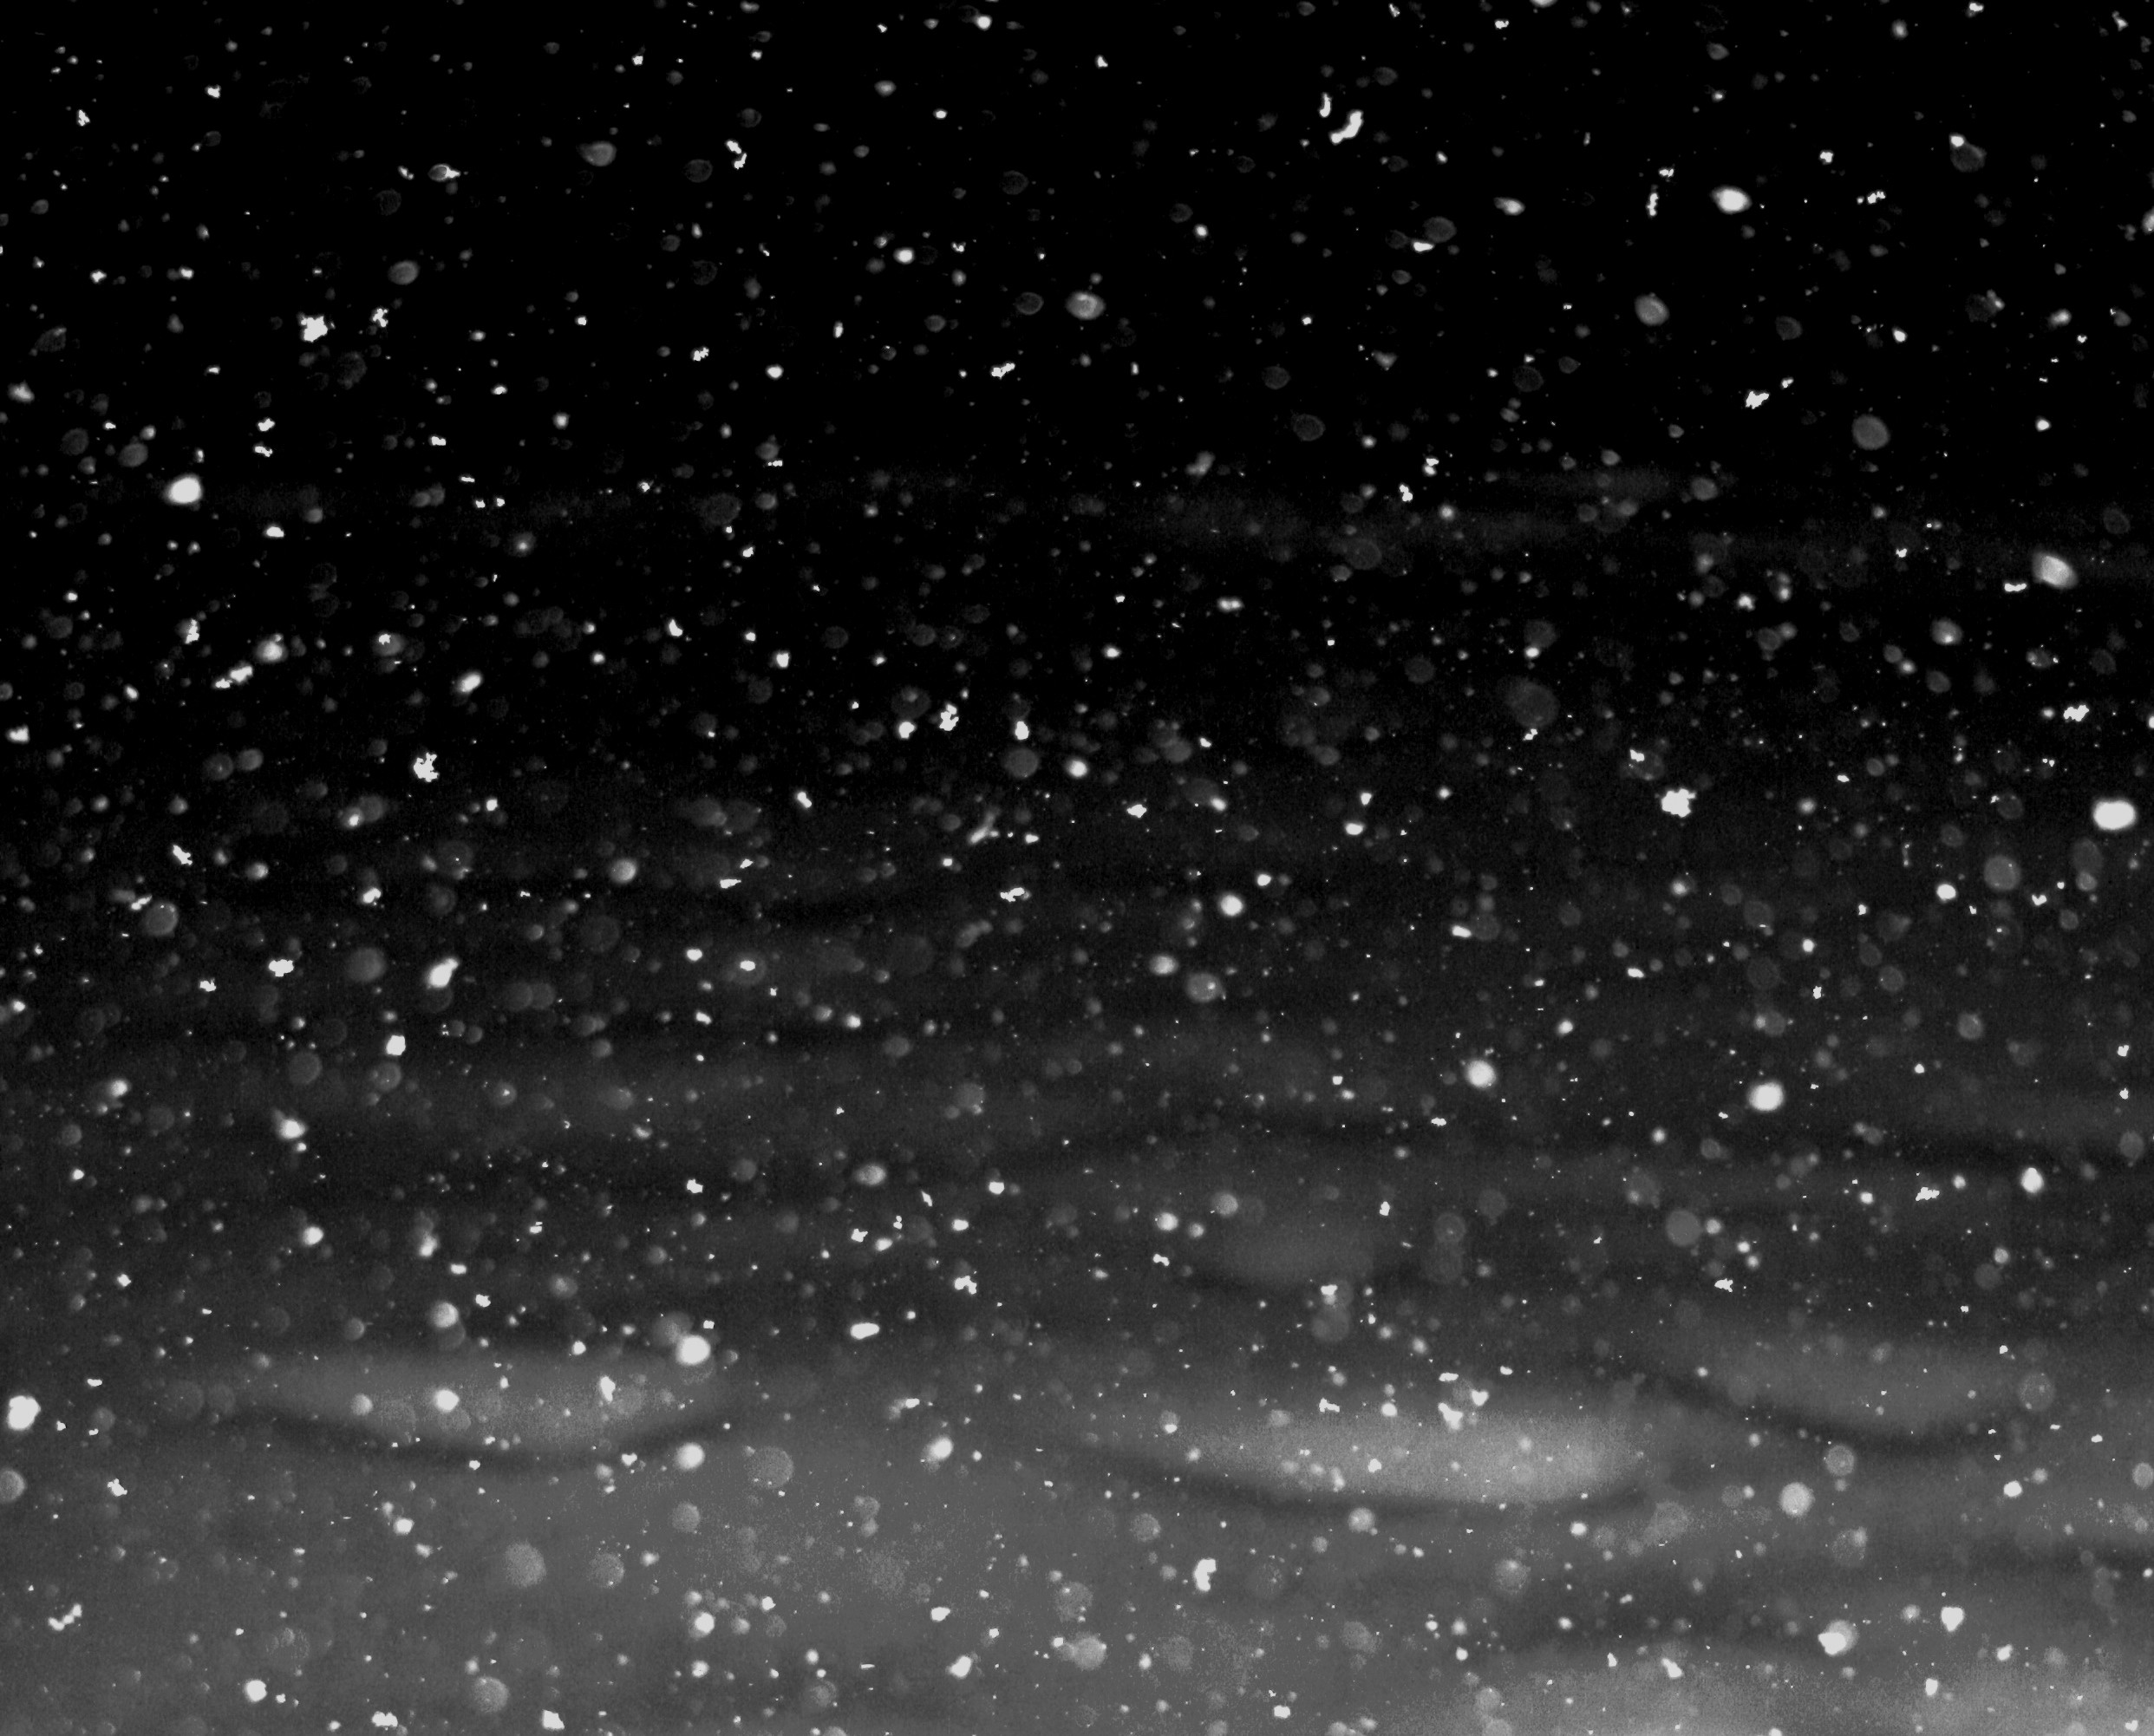 File:Free snowflakes falling at Night texture for layers Creative Commons  (3061623692).